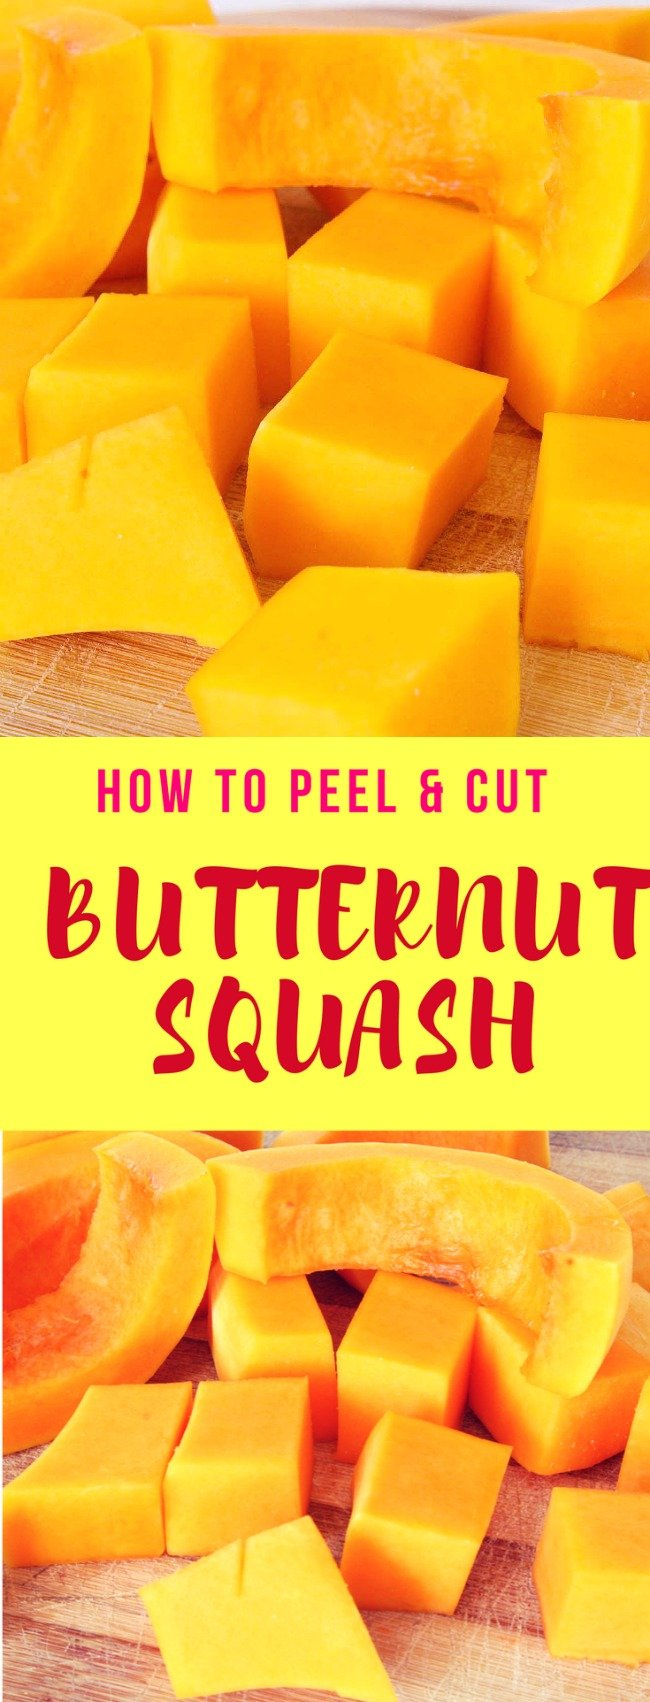 How to peel butternut squash